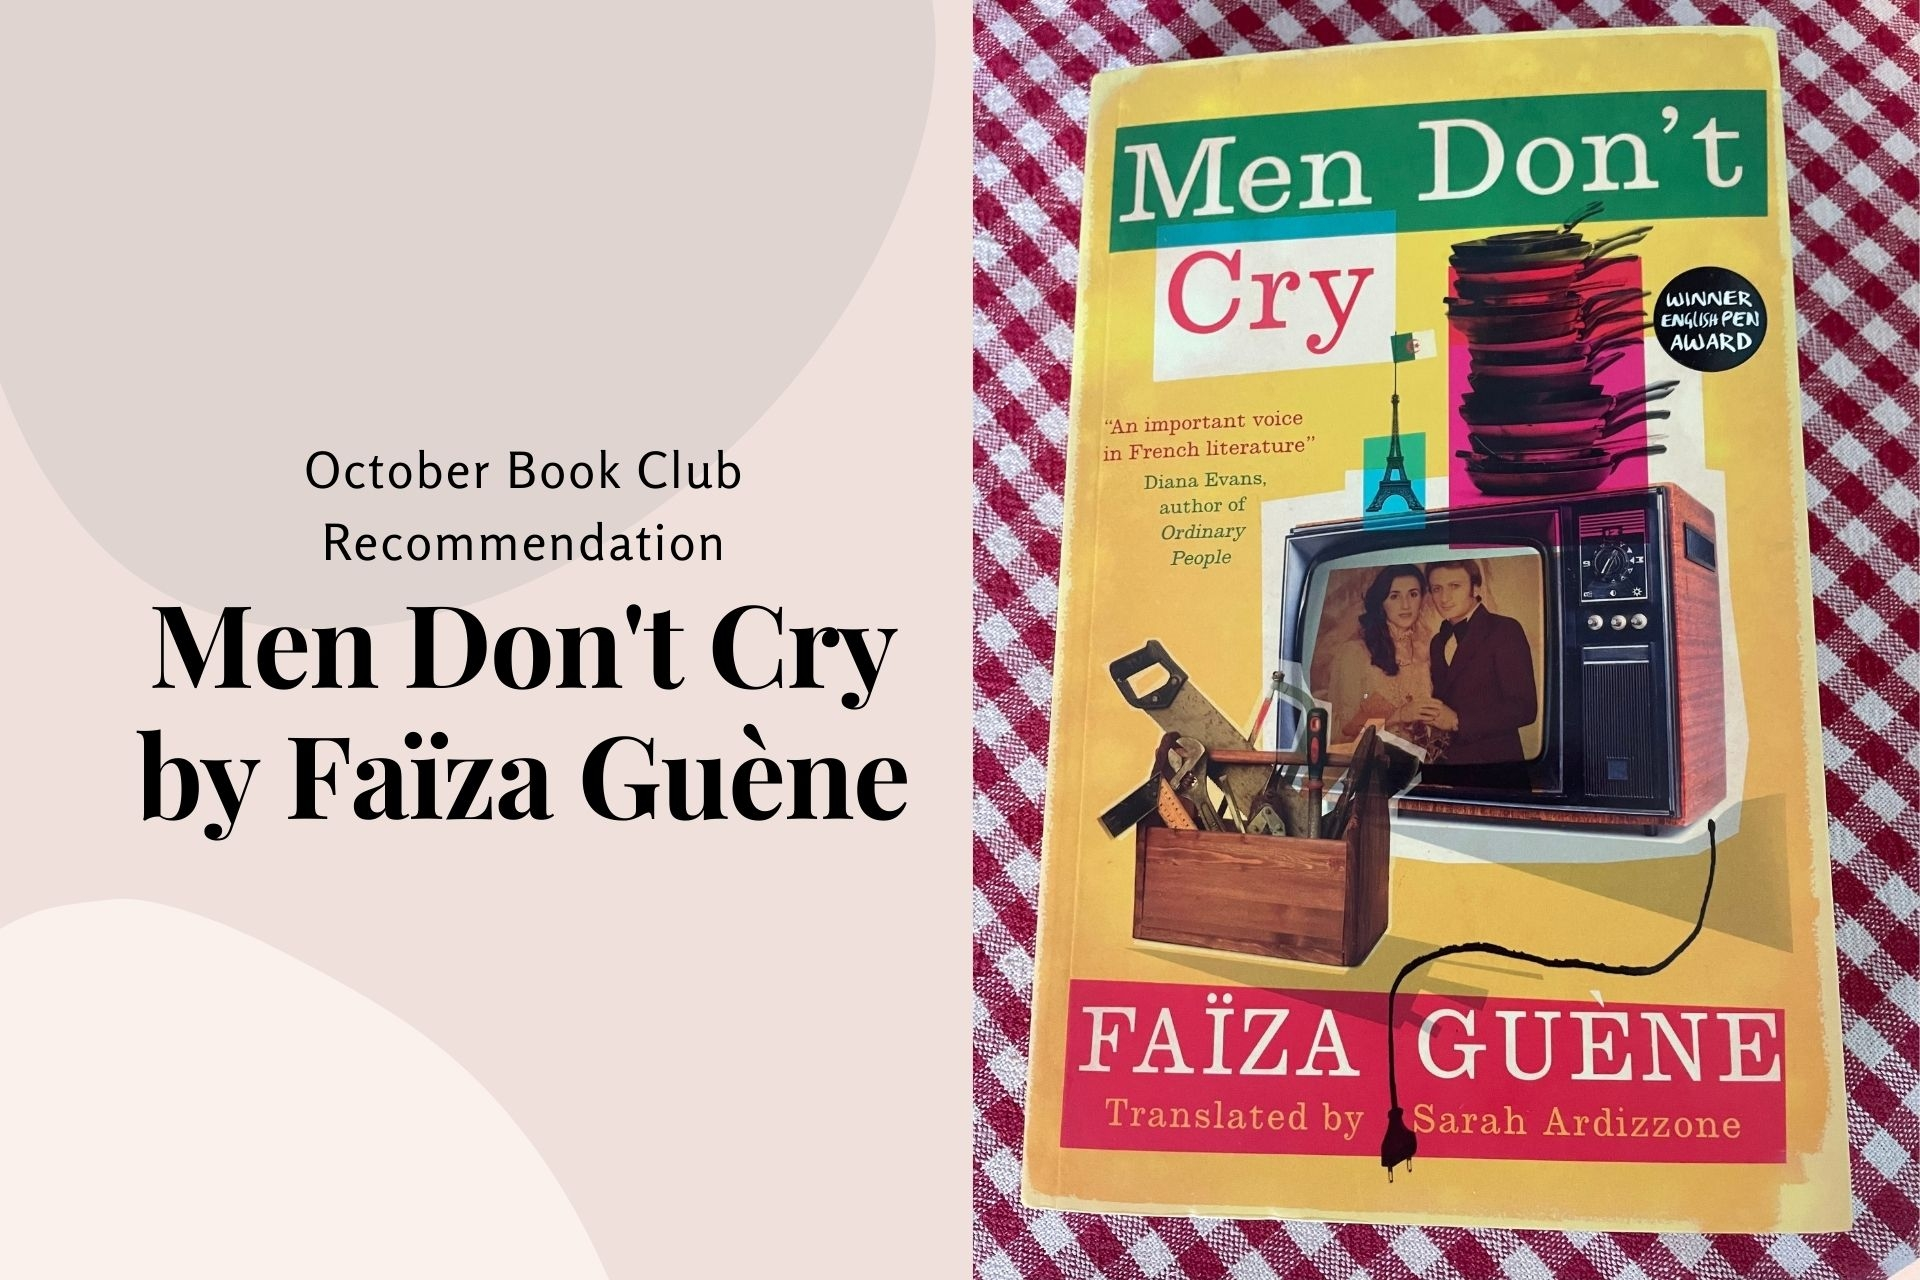 October 2021 Book Club Recommendation: Men Don't Cry by Faïza Guène